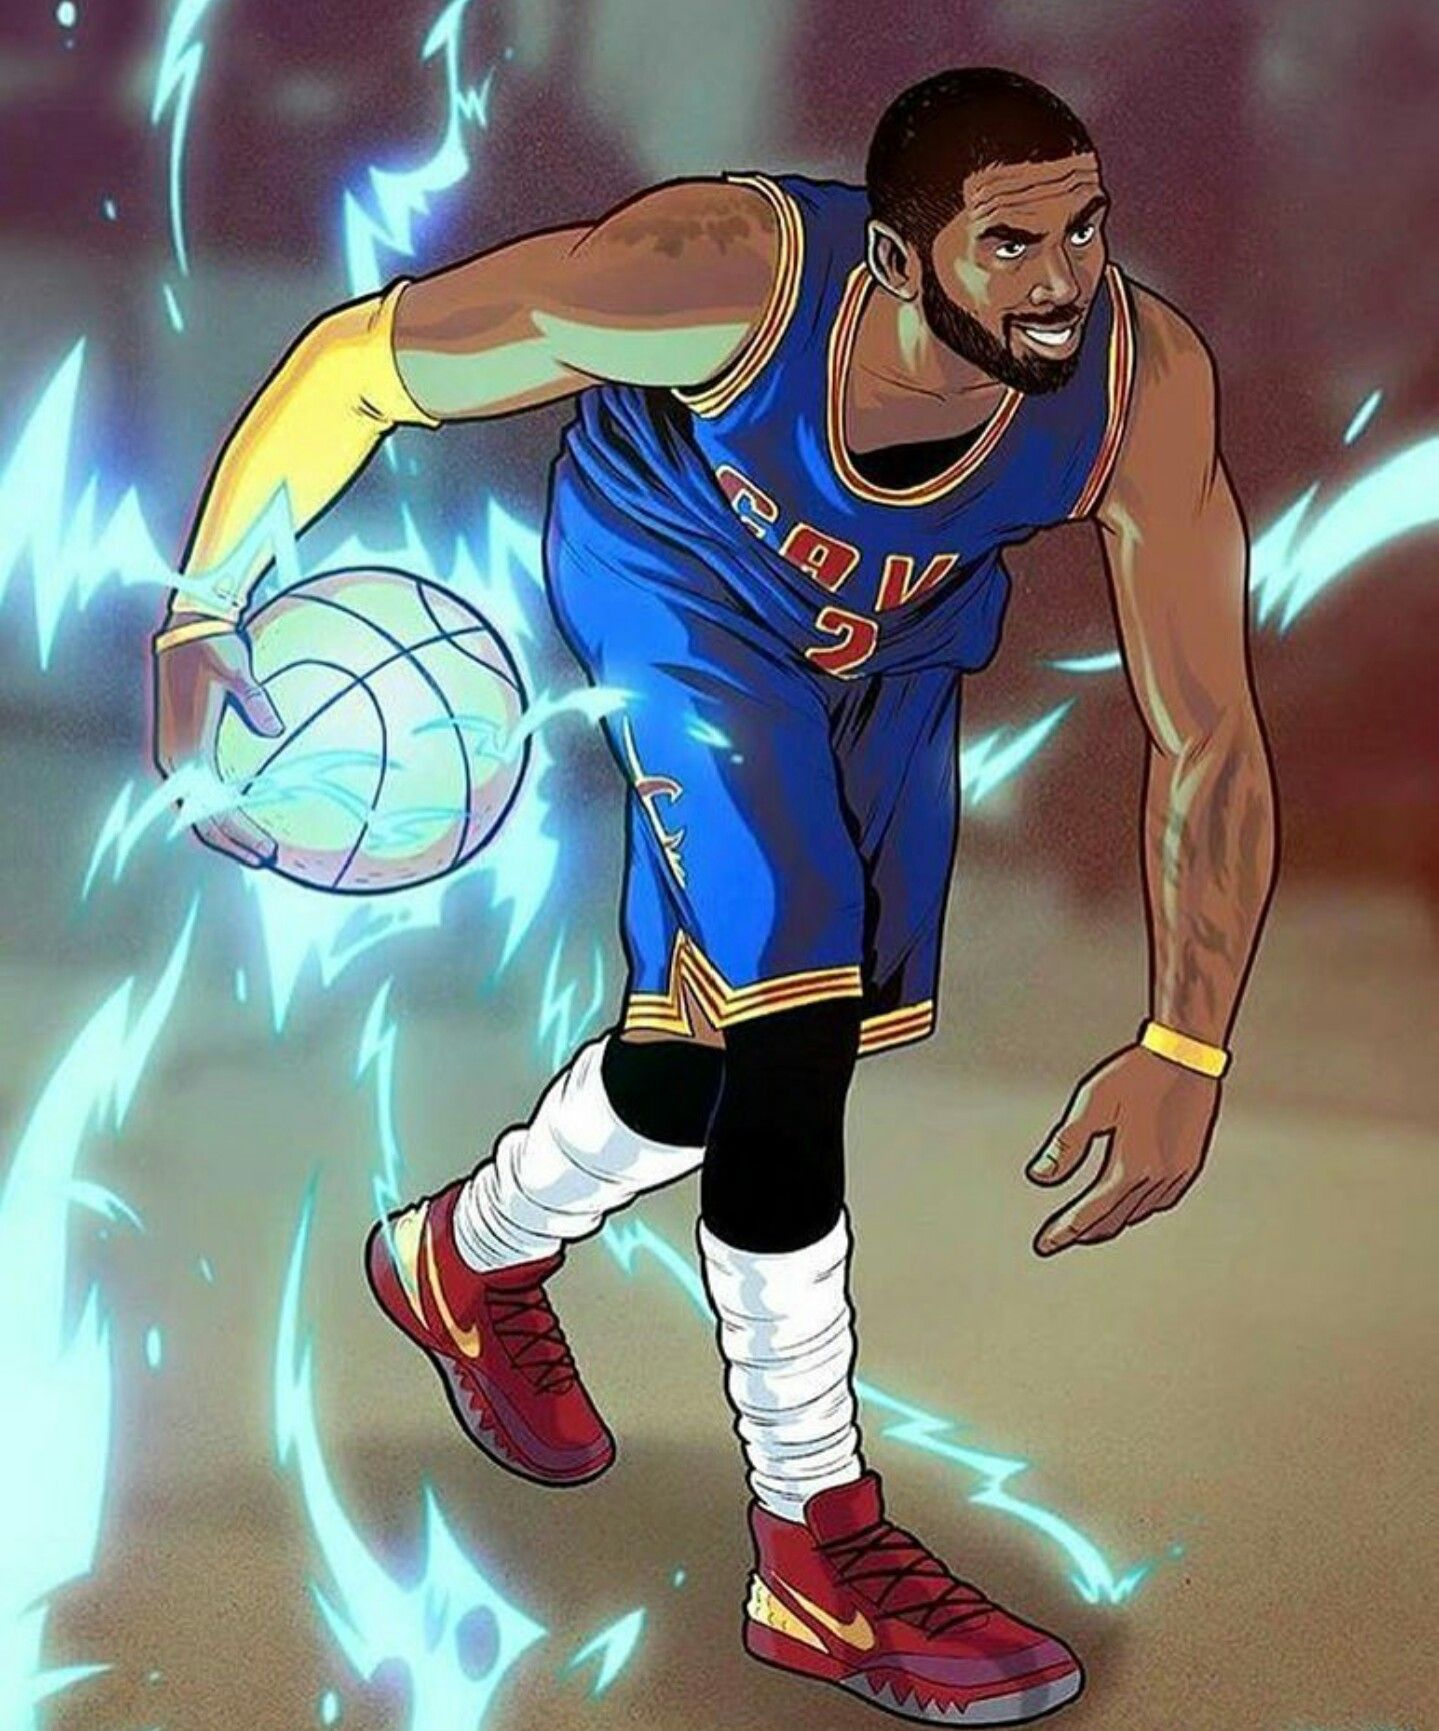 Animated Uncle Drew Wallpaper Hd Http Wallpapersalbum Com Animated Uncle Drew Wallpaper Hd Html In 2020 Nba Art Basketball Players Nba Nba Wallpapers